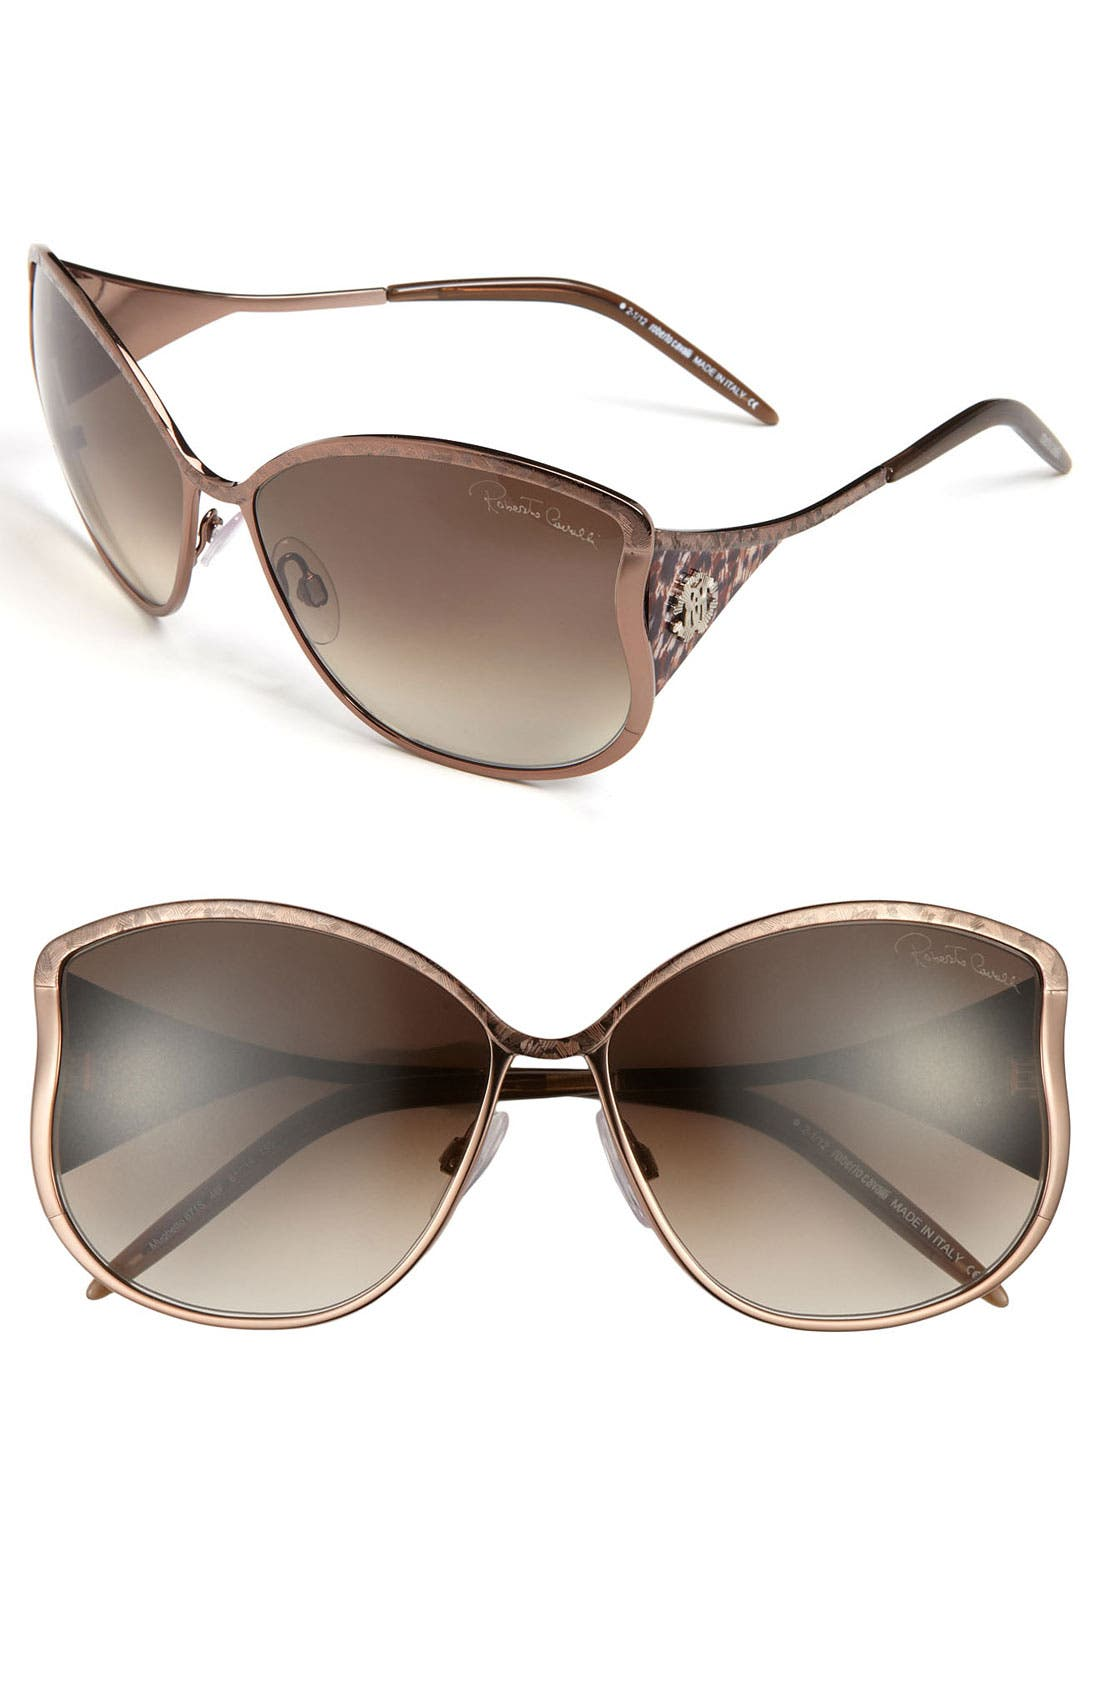 Main Image - Roberto Cavalli 61mm Oversized Sunglasses